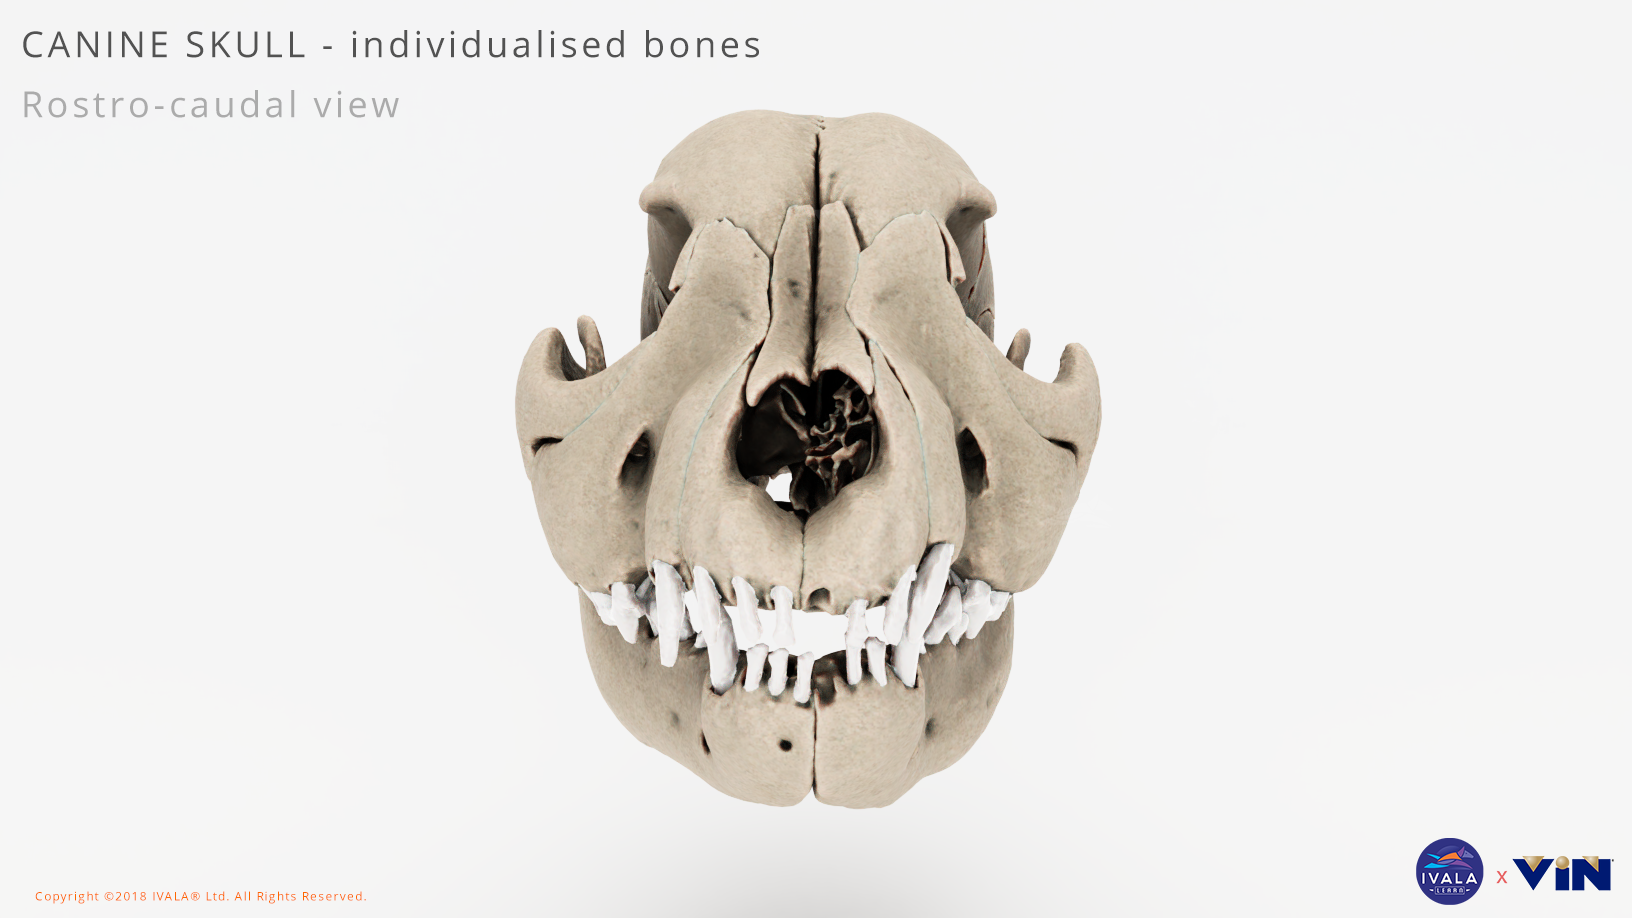 Dog / canine skull anatomy